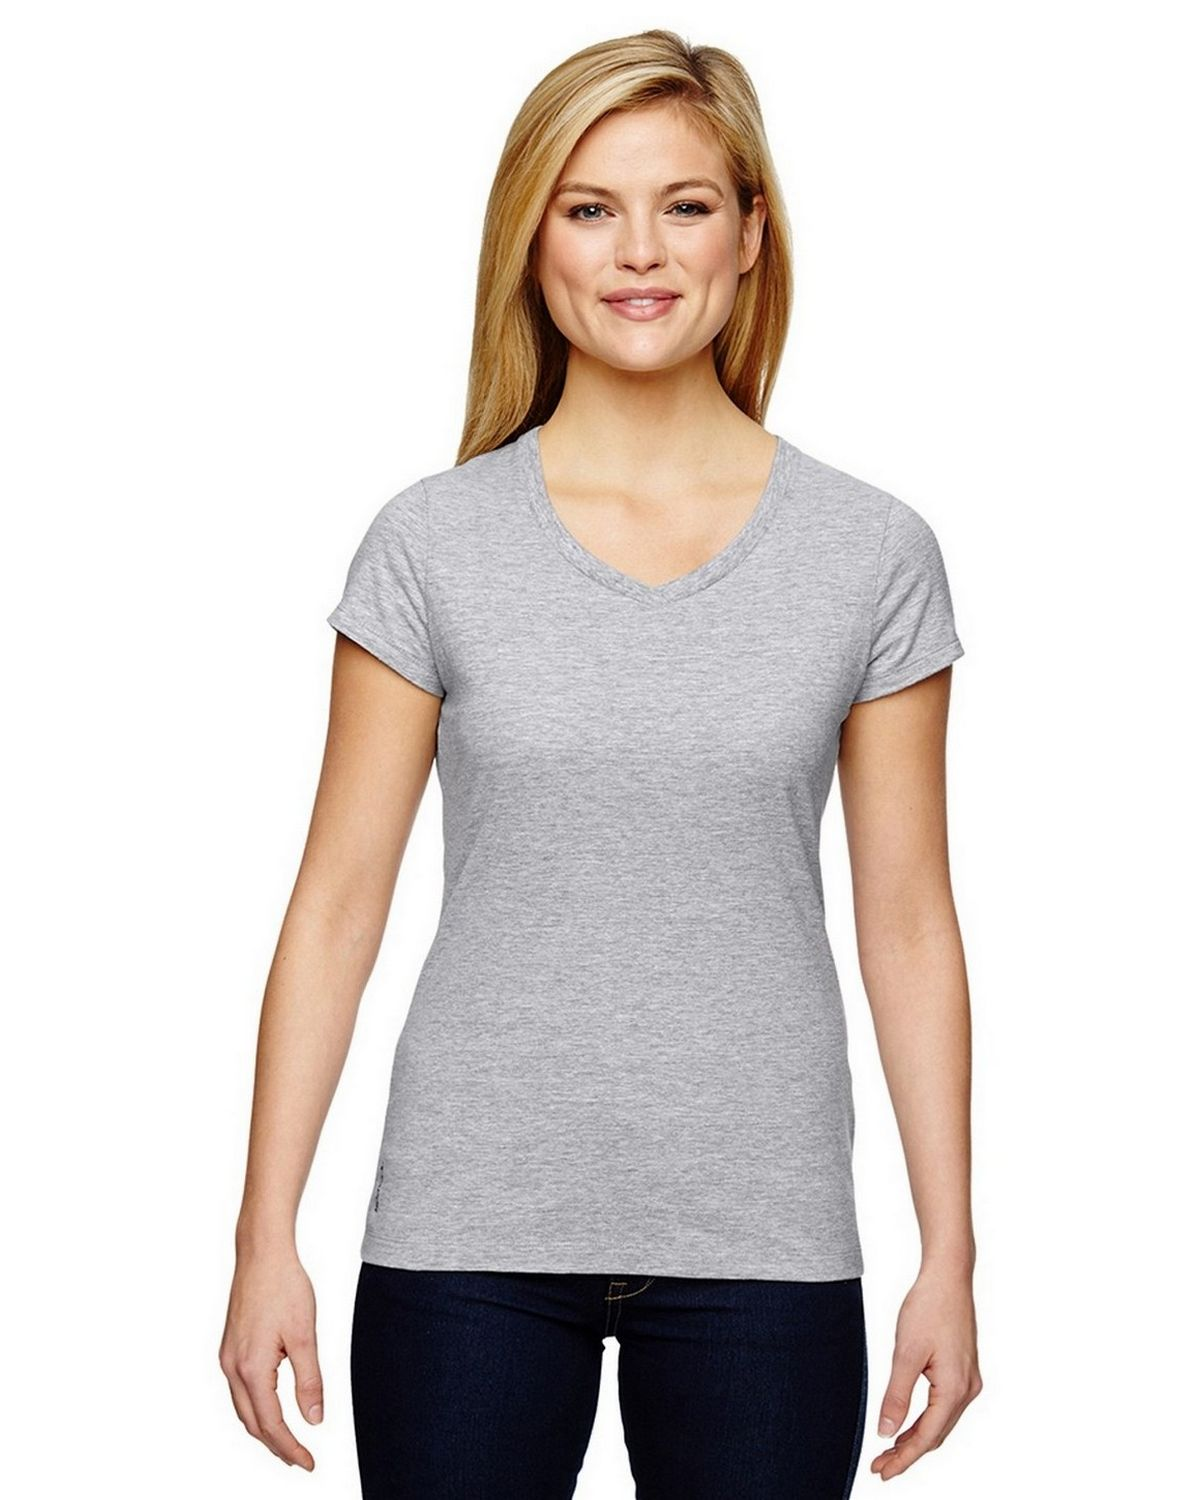 Champion T050 Vapor Ladies T-Shirt - White Heather - XS T050